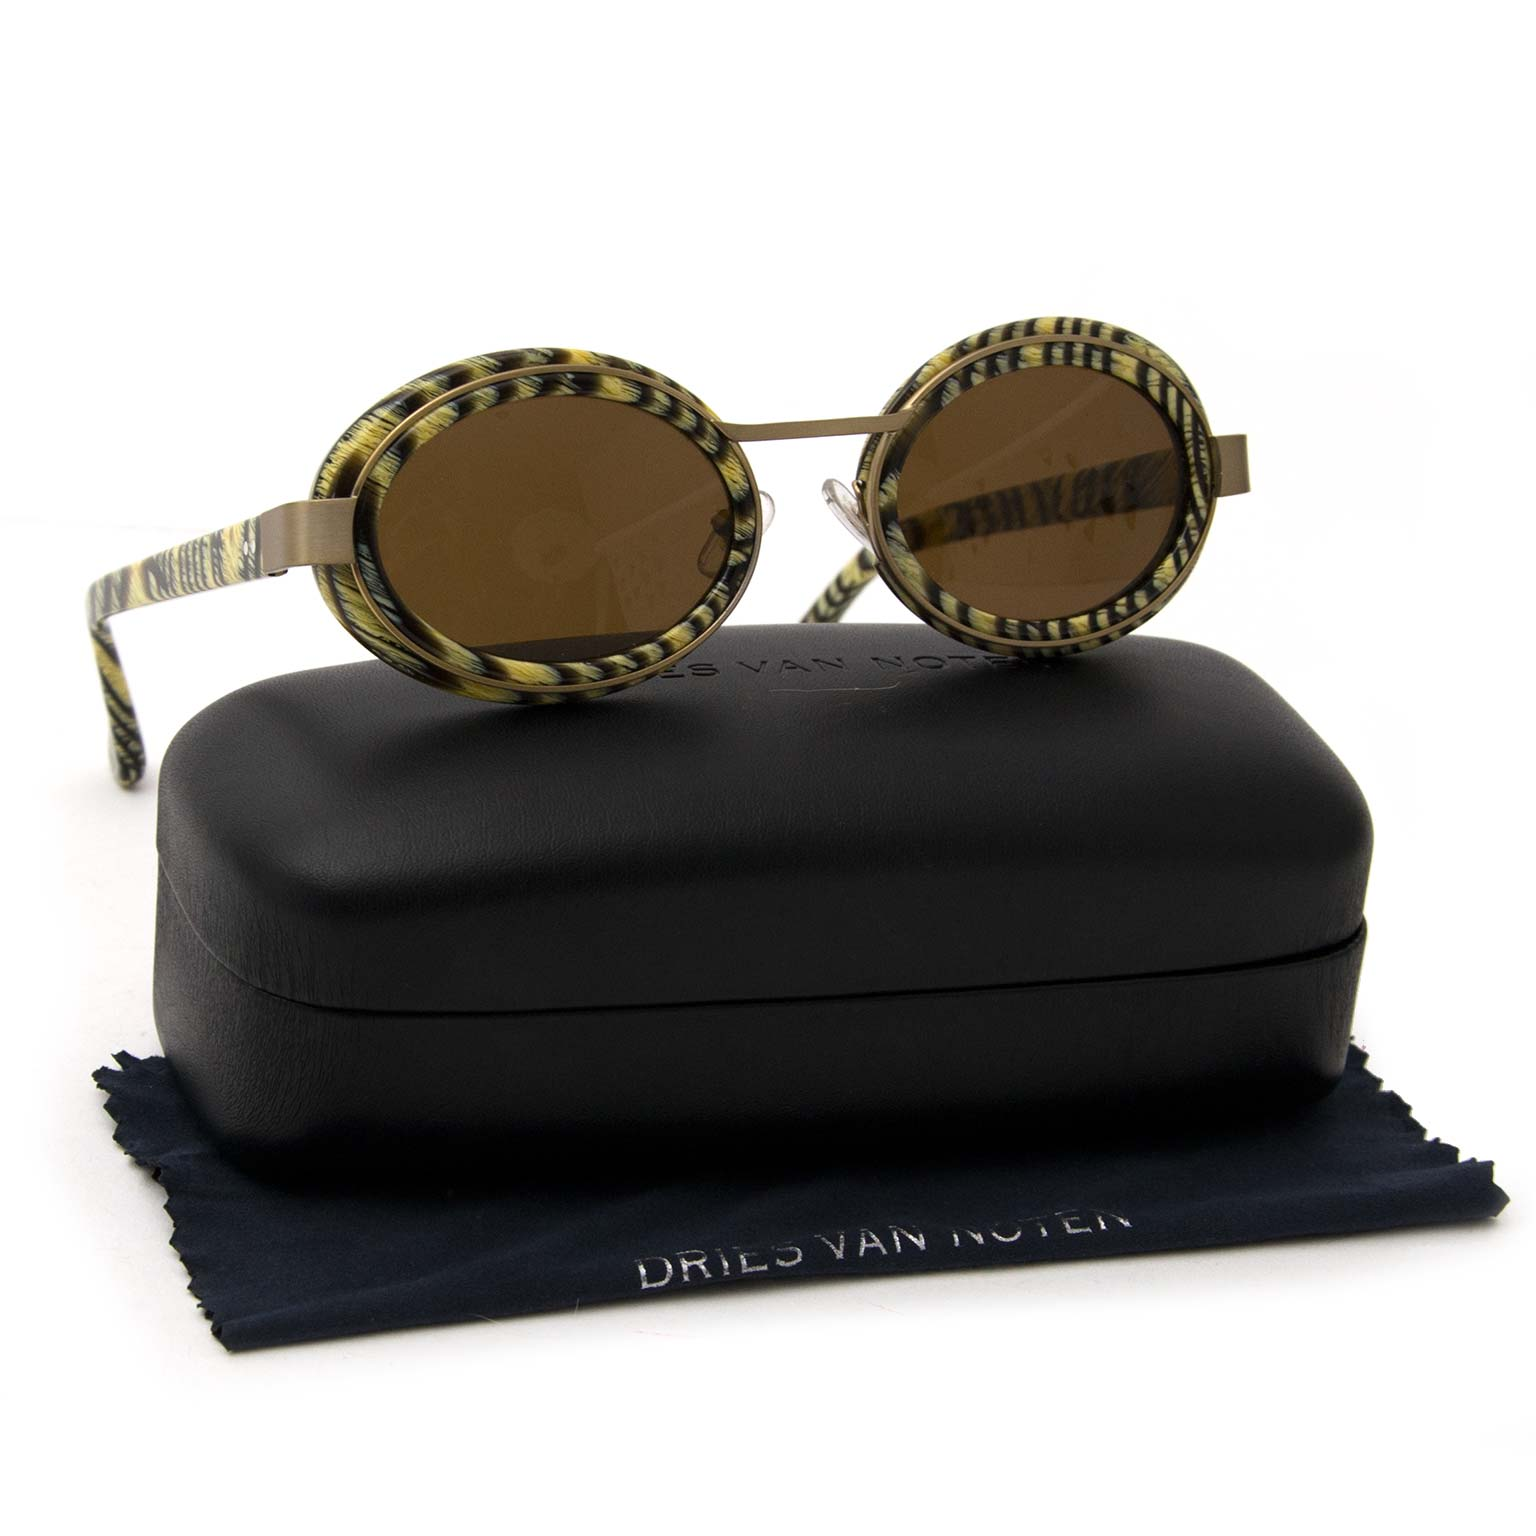 dries van noten and linda farrow oval sunglasses now online at labellov.com for the best price